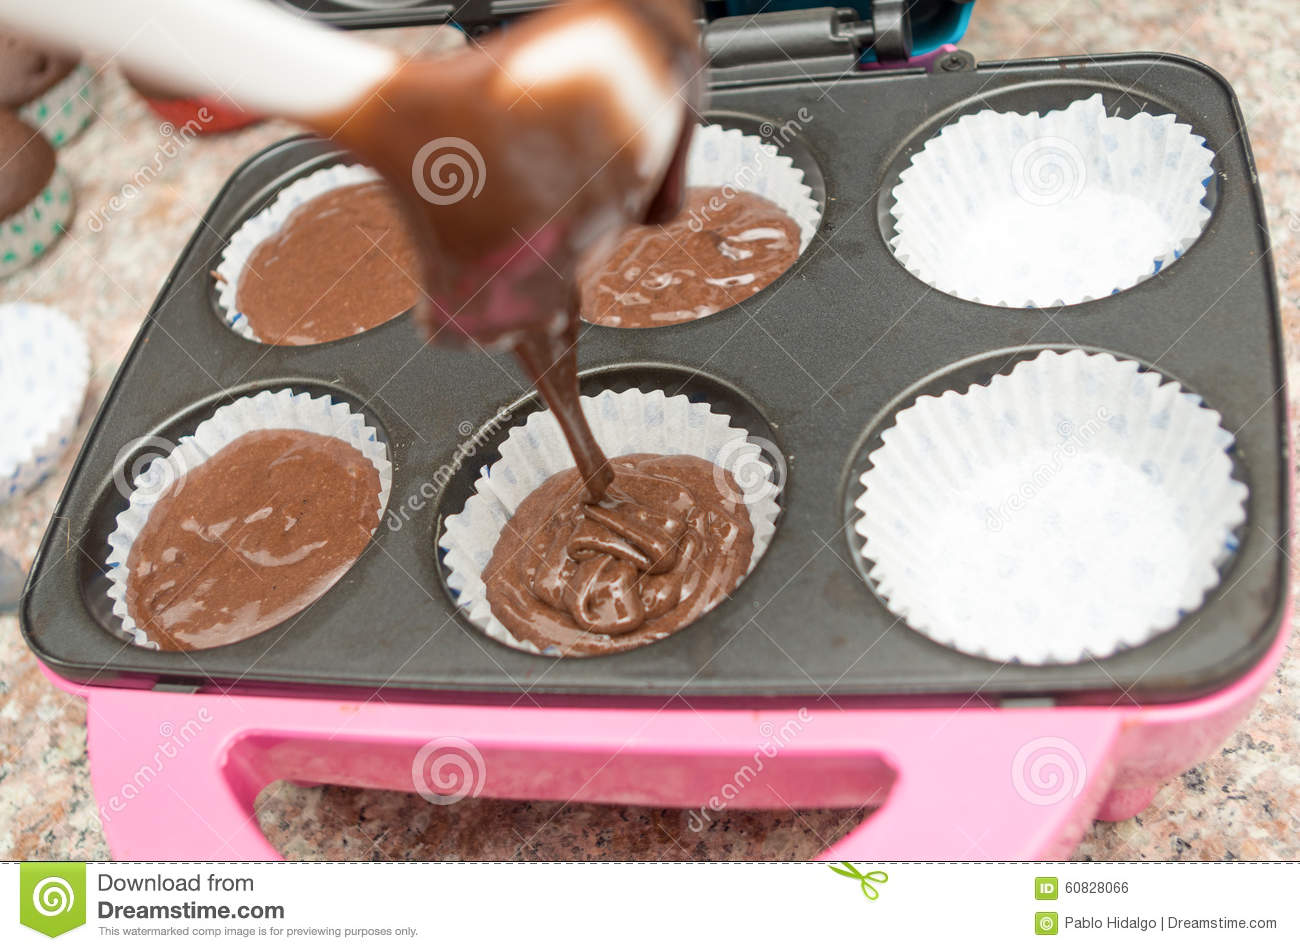 Can You Bake A Cake In A Metal Mixing Bowl